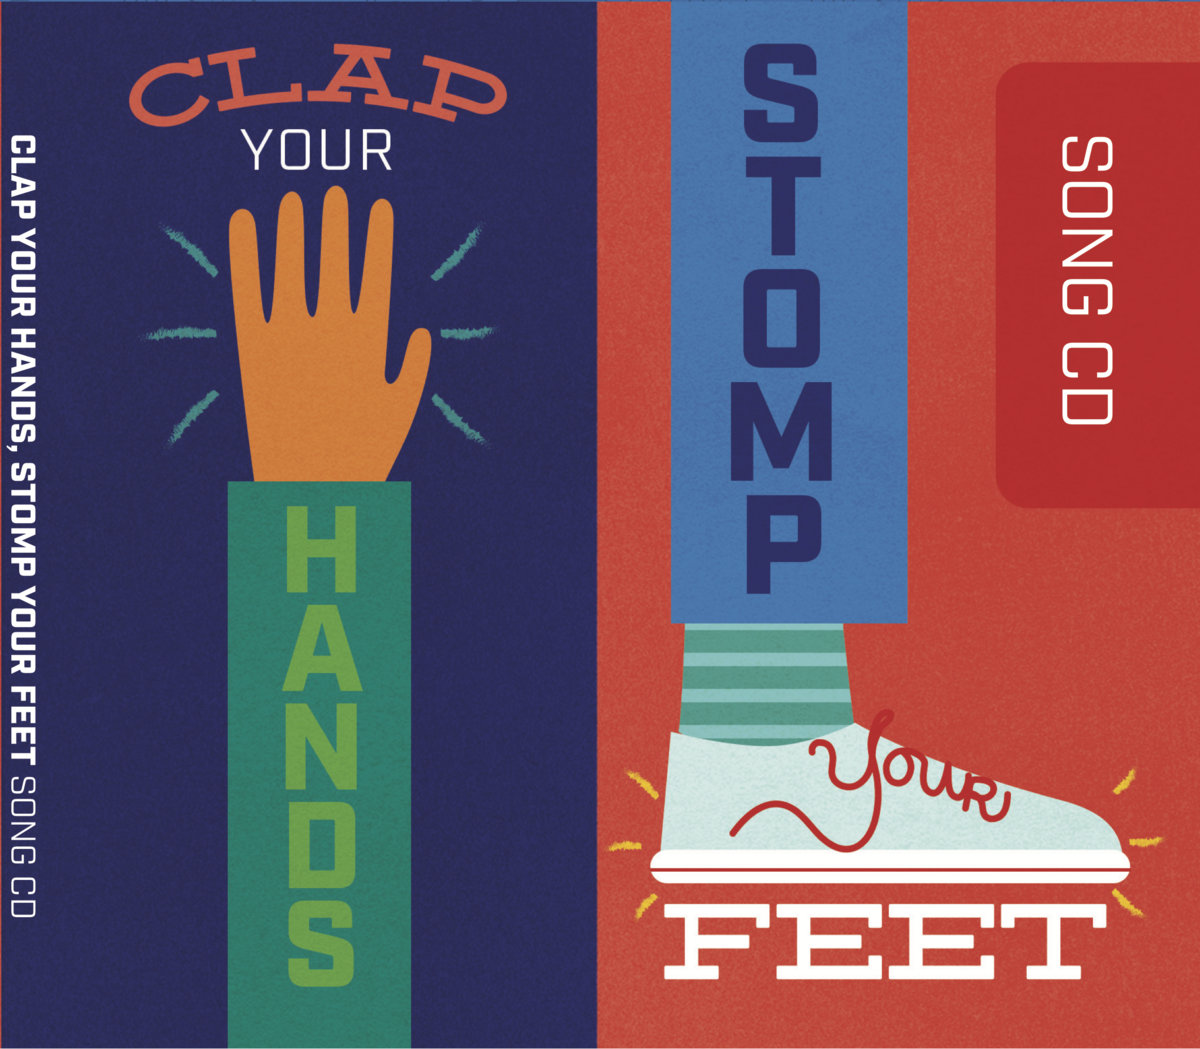 Clap Your Hands Stomp Your Feet Sojourn Music Sojourn ★ lagump3downloads.com on lagump3downloads.com we do not stay all the mp3 files as they are in different websites from which we collect links in mp3 format, so that we do not violate any copyright. clap your hands stomp your feet